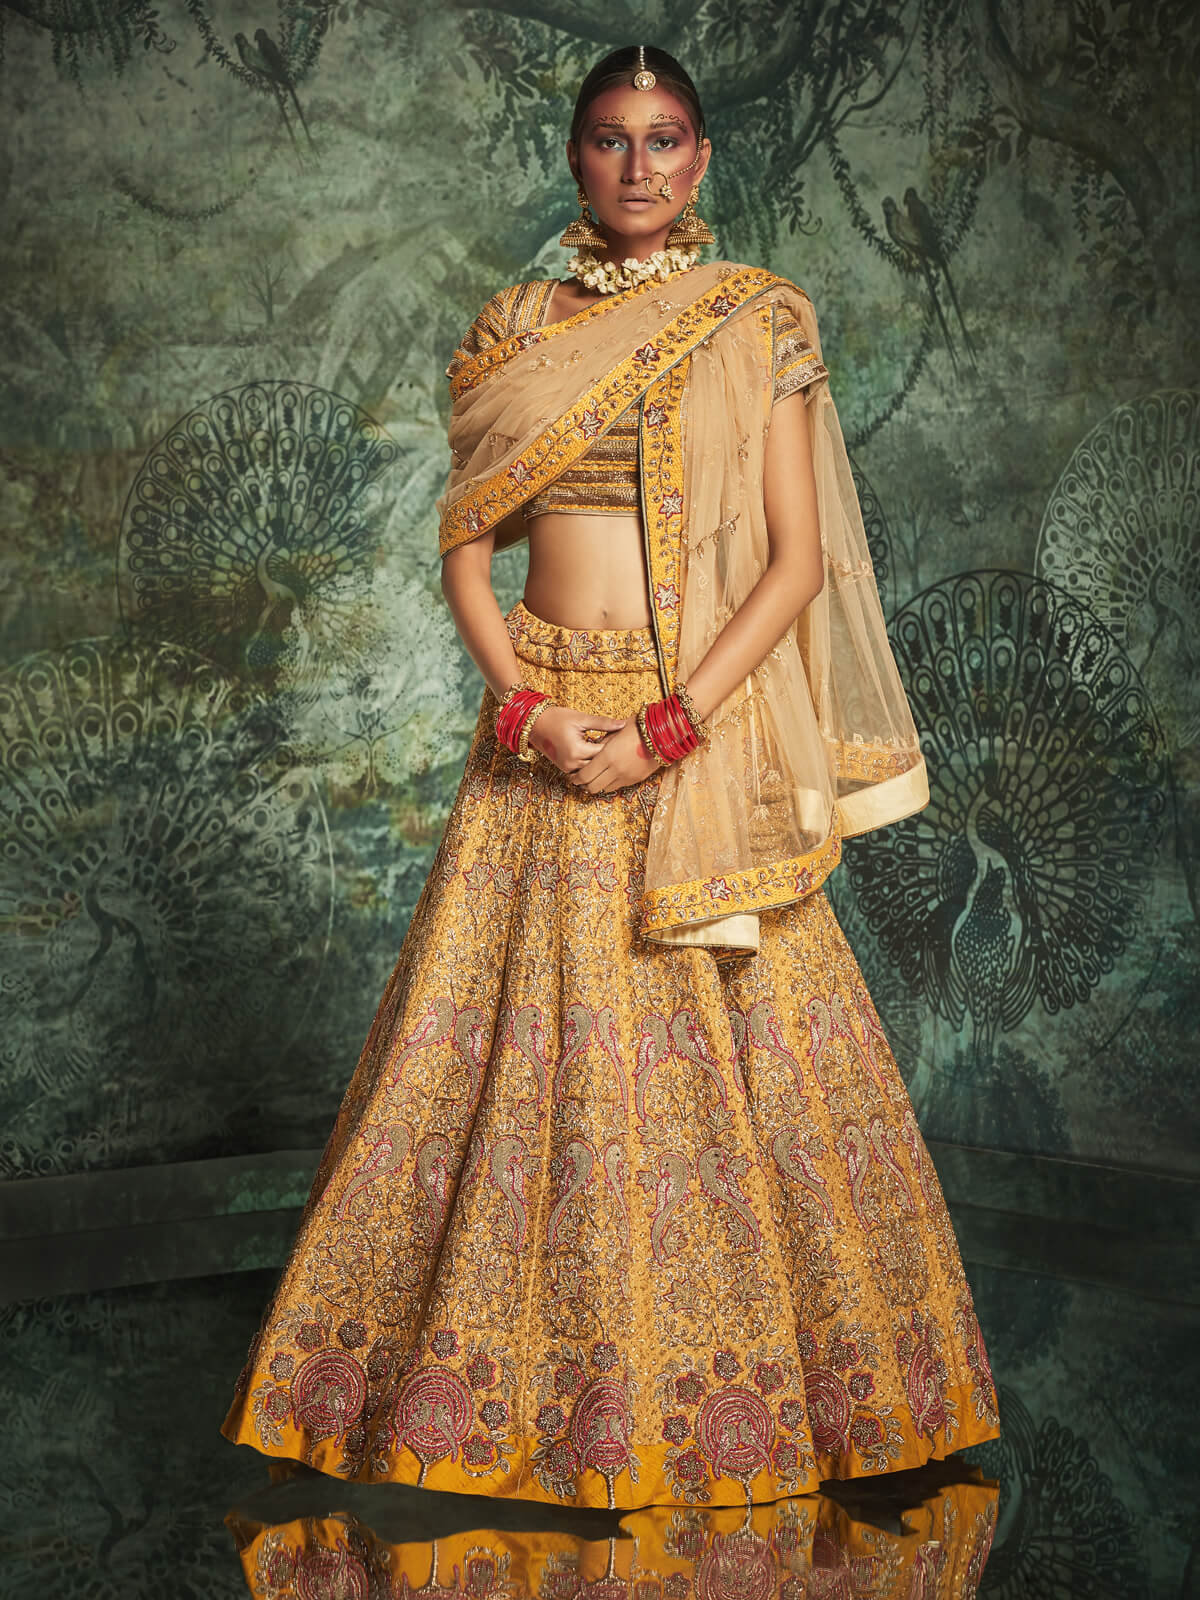 Mumbai Lehenga Shopping Guide